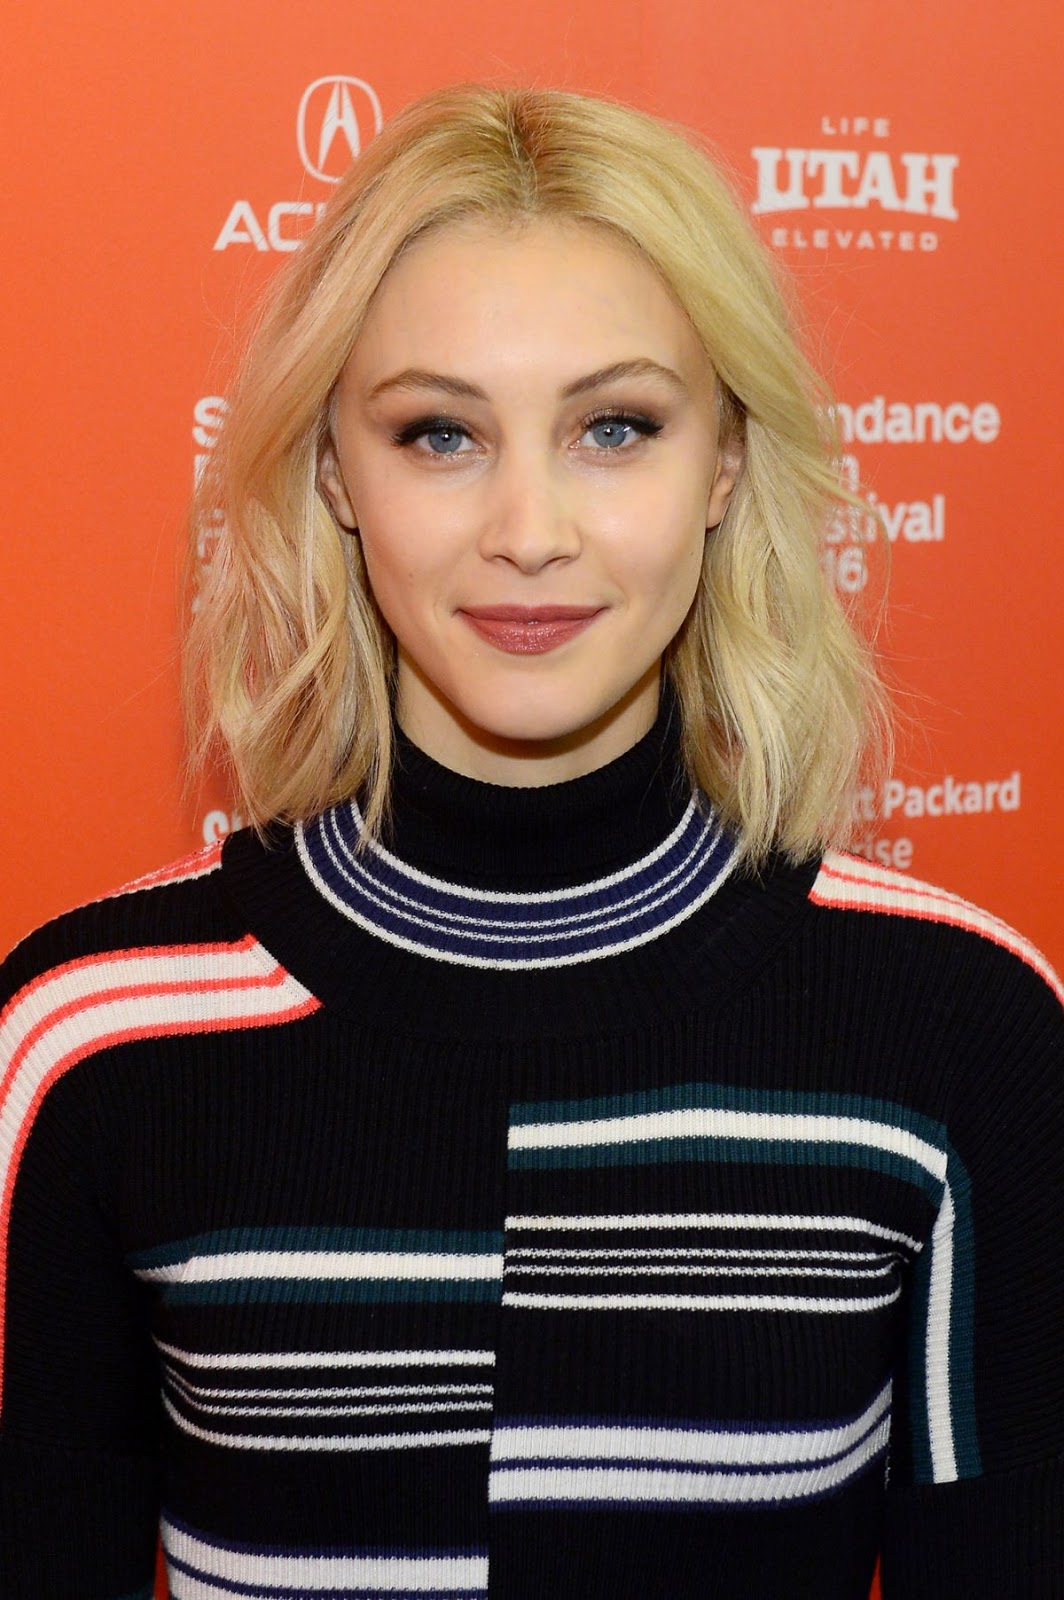 2016 Sundance Film Festival - Sarah Gadon at 1.22.63 Premiere in Park City, Utah